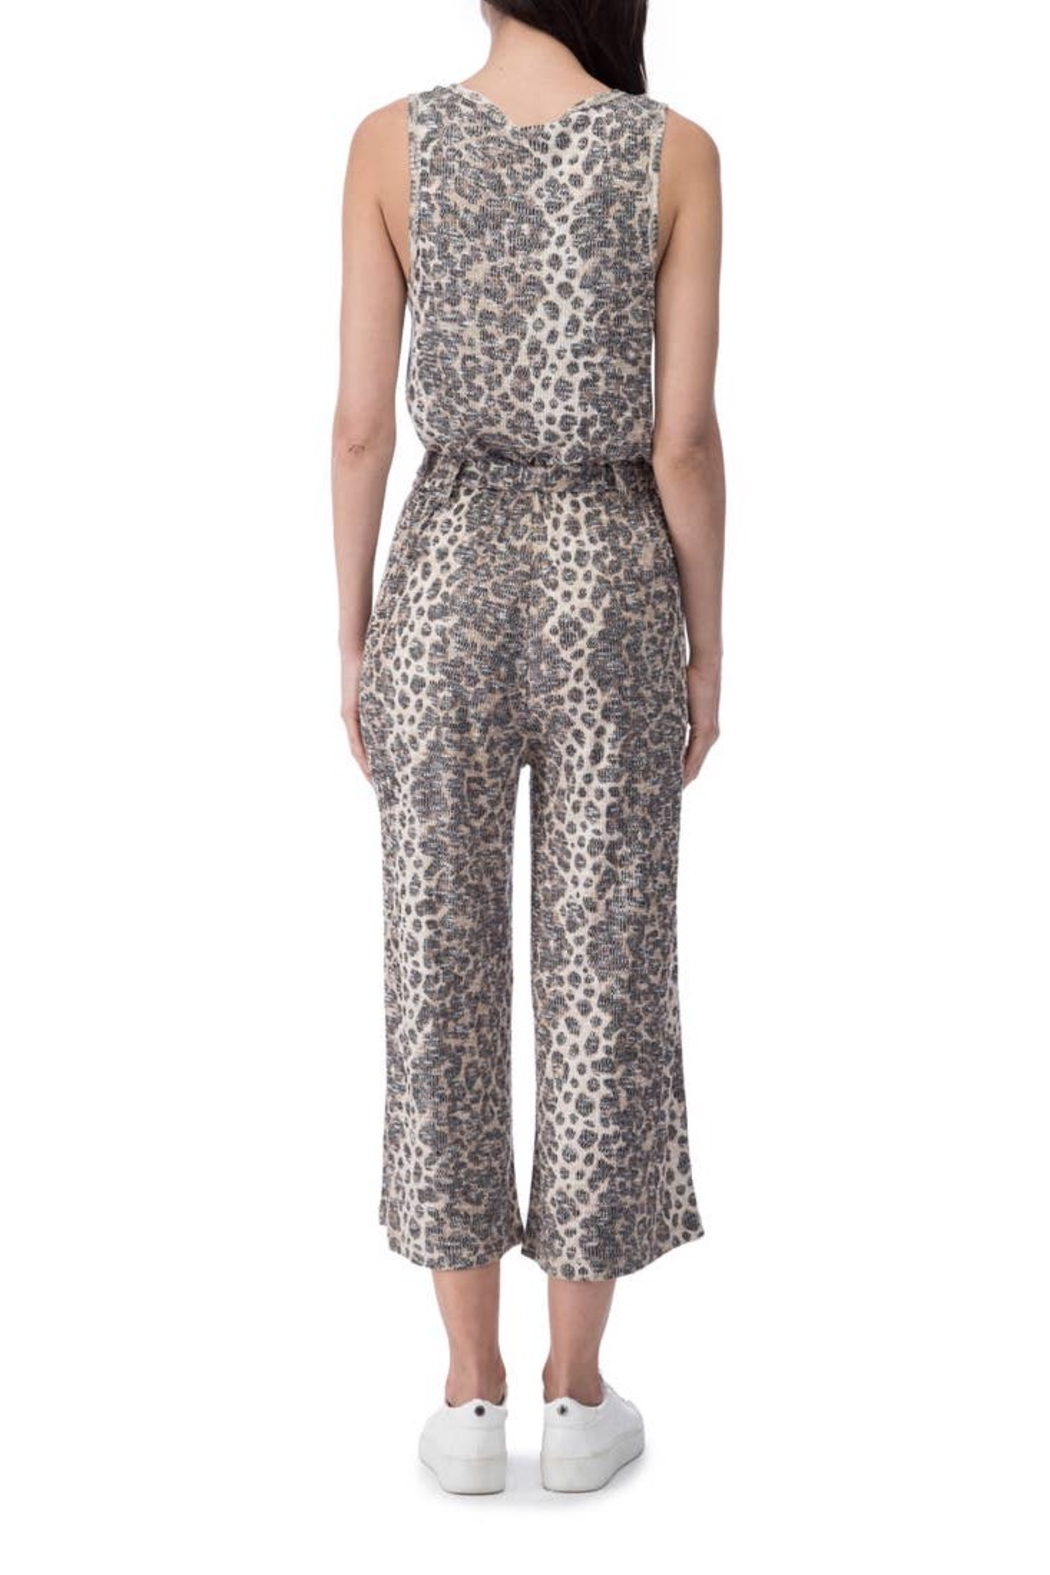 B Collection by Bobeau Cheetah Ribbed Jumpsuit - Front Full Image